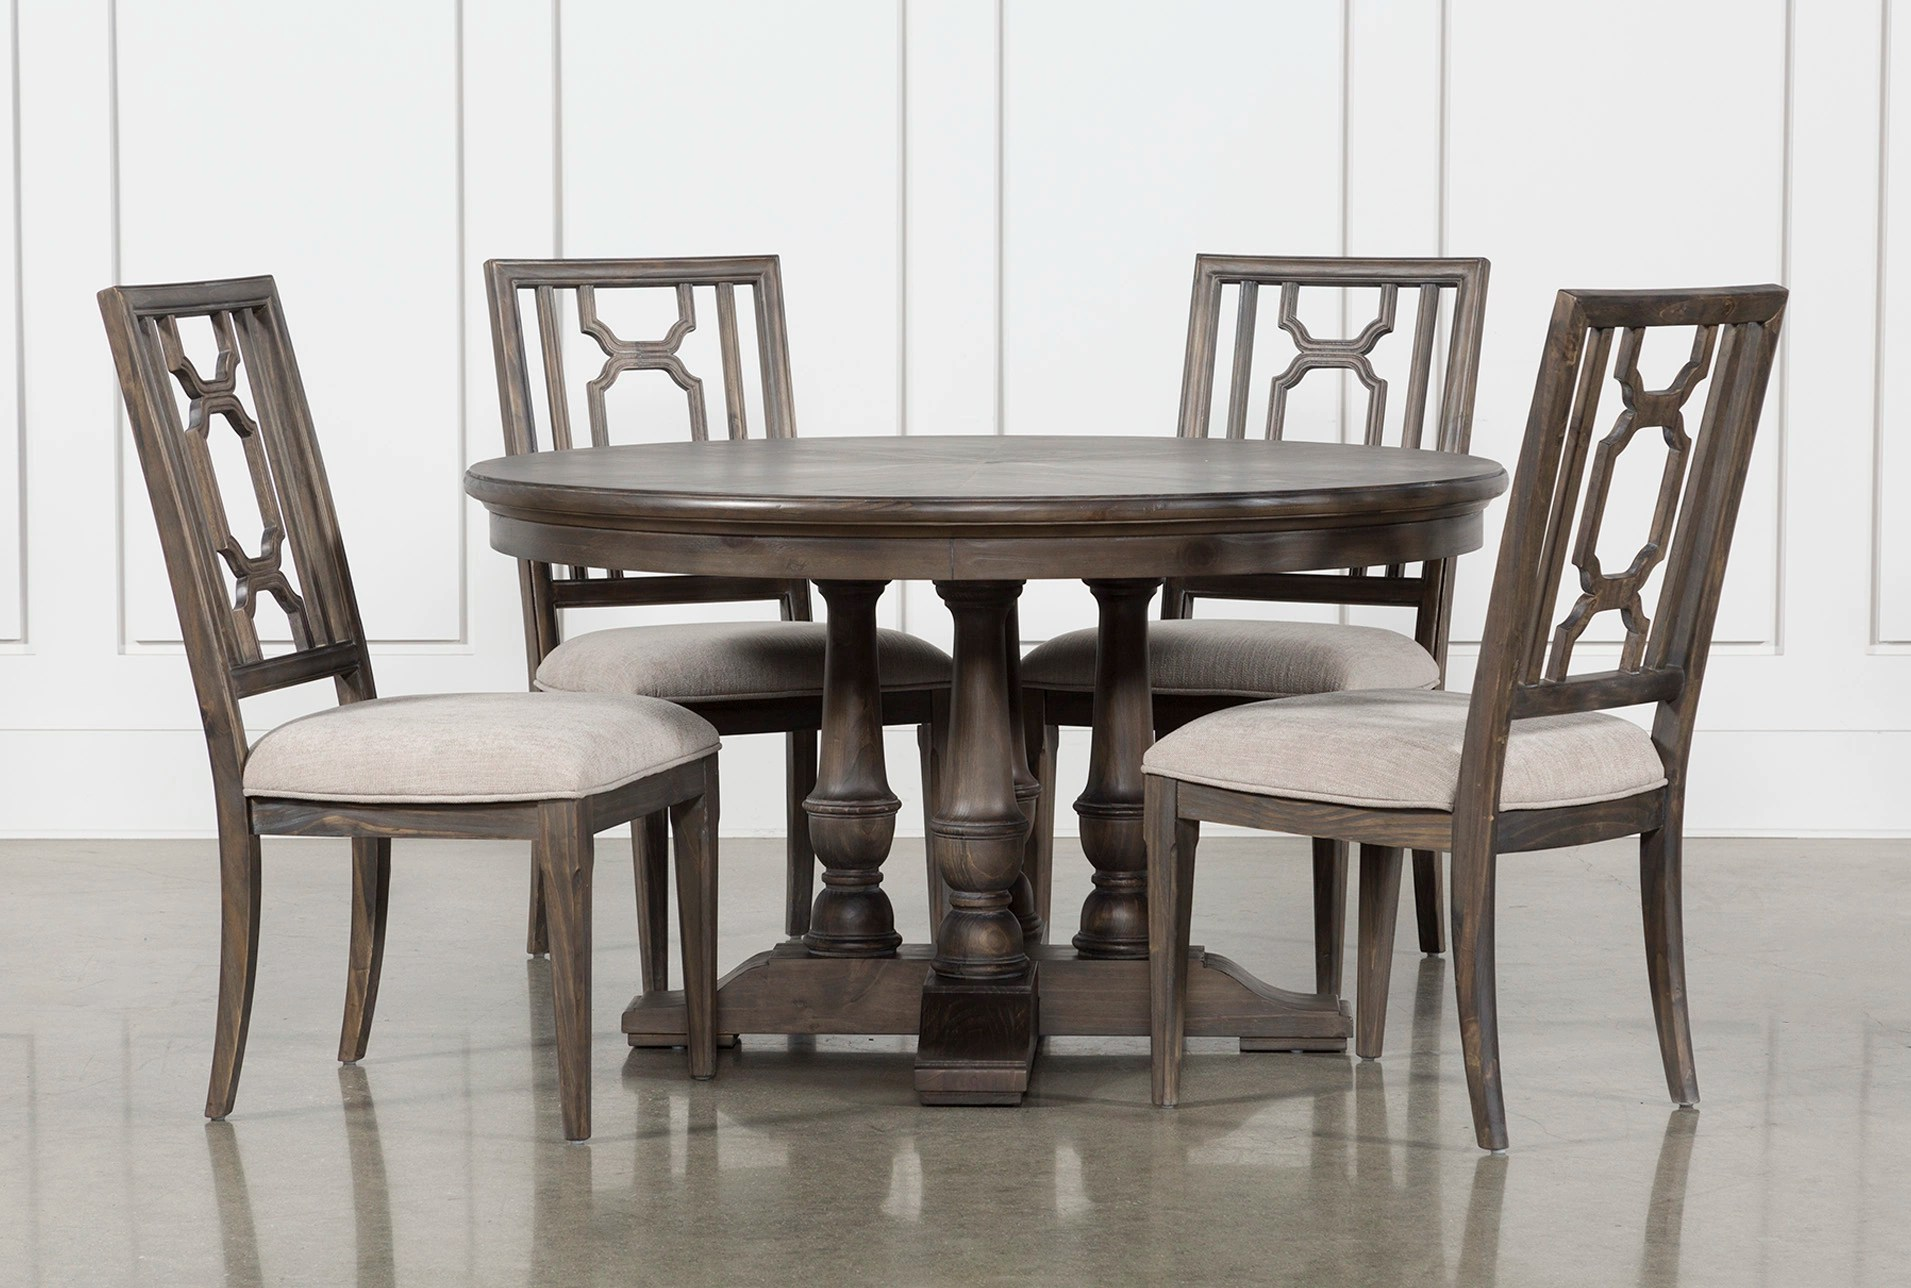 Living Spaces Dining Chairs Laurent 5 Piece Round Dining Set With Wood Chairs Living